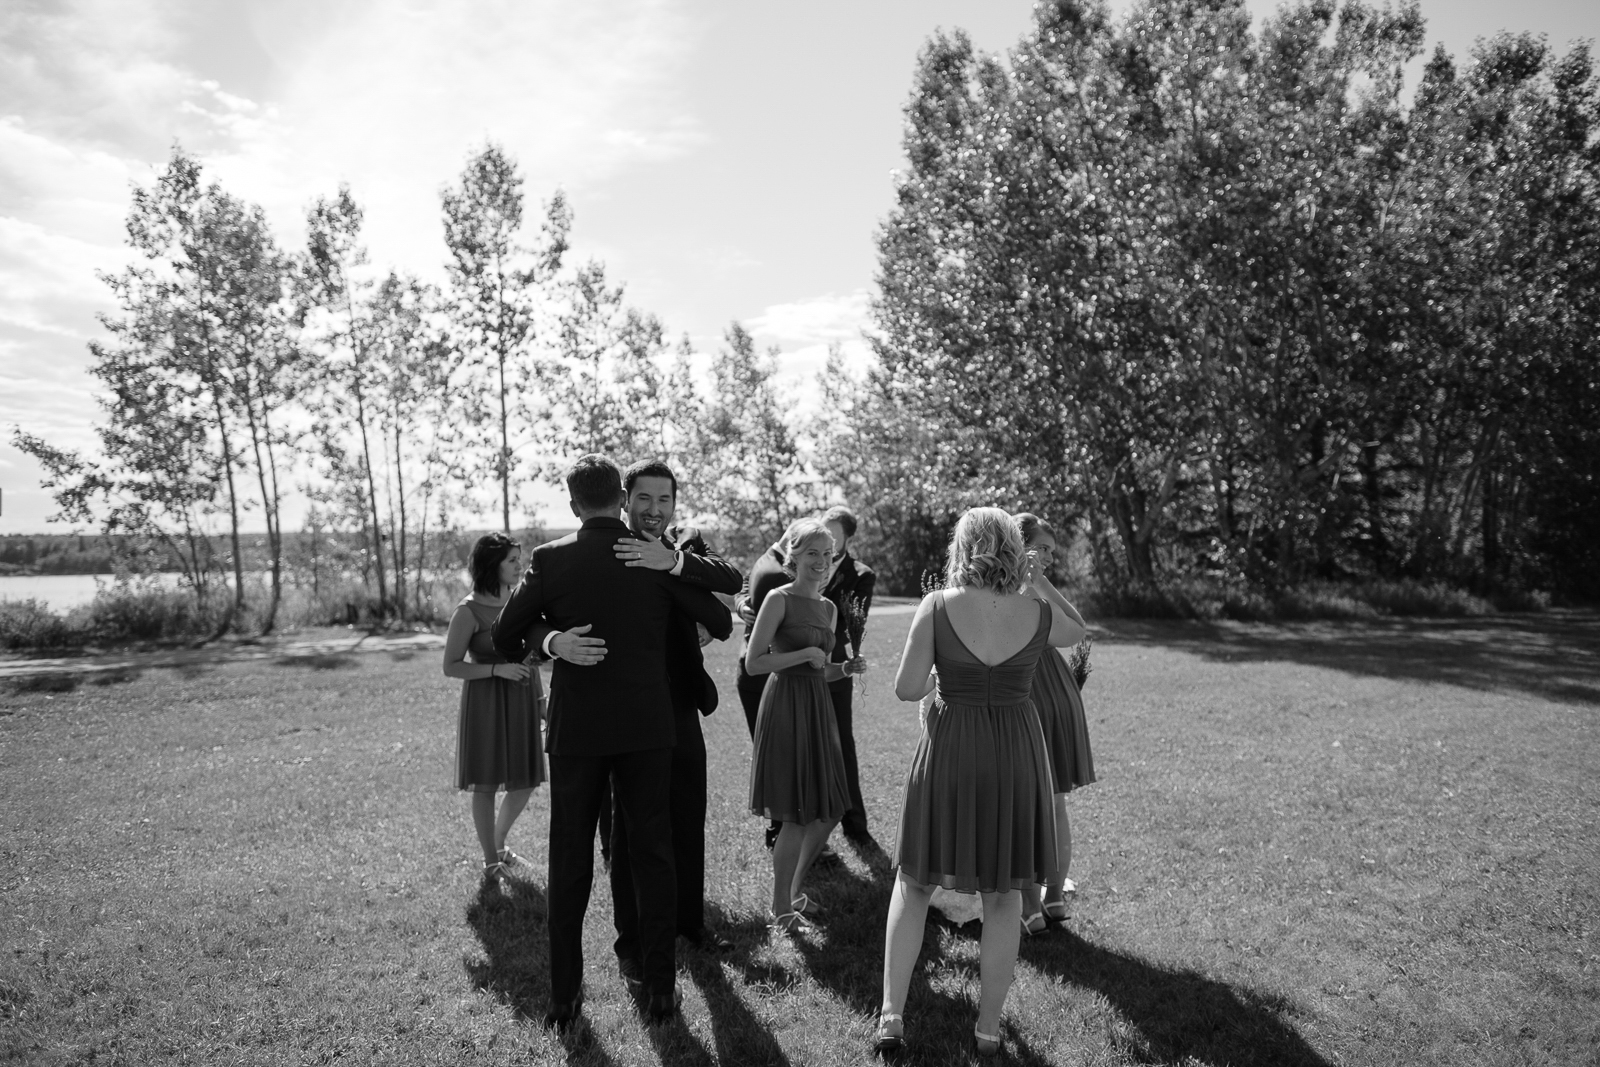 46-73Andrew_Pavlidis_Photography_Kasia_and_Michael_Calgary_Wedding_Blog-1210_Calgary_Wedding_Photographer